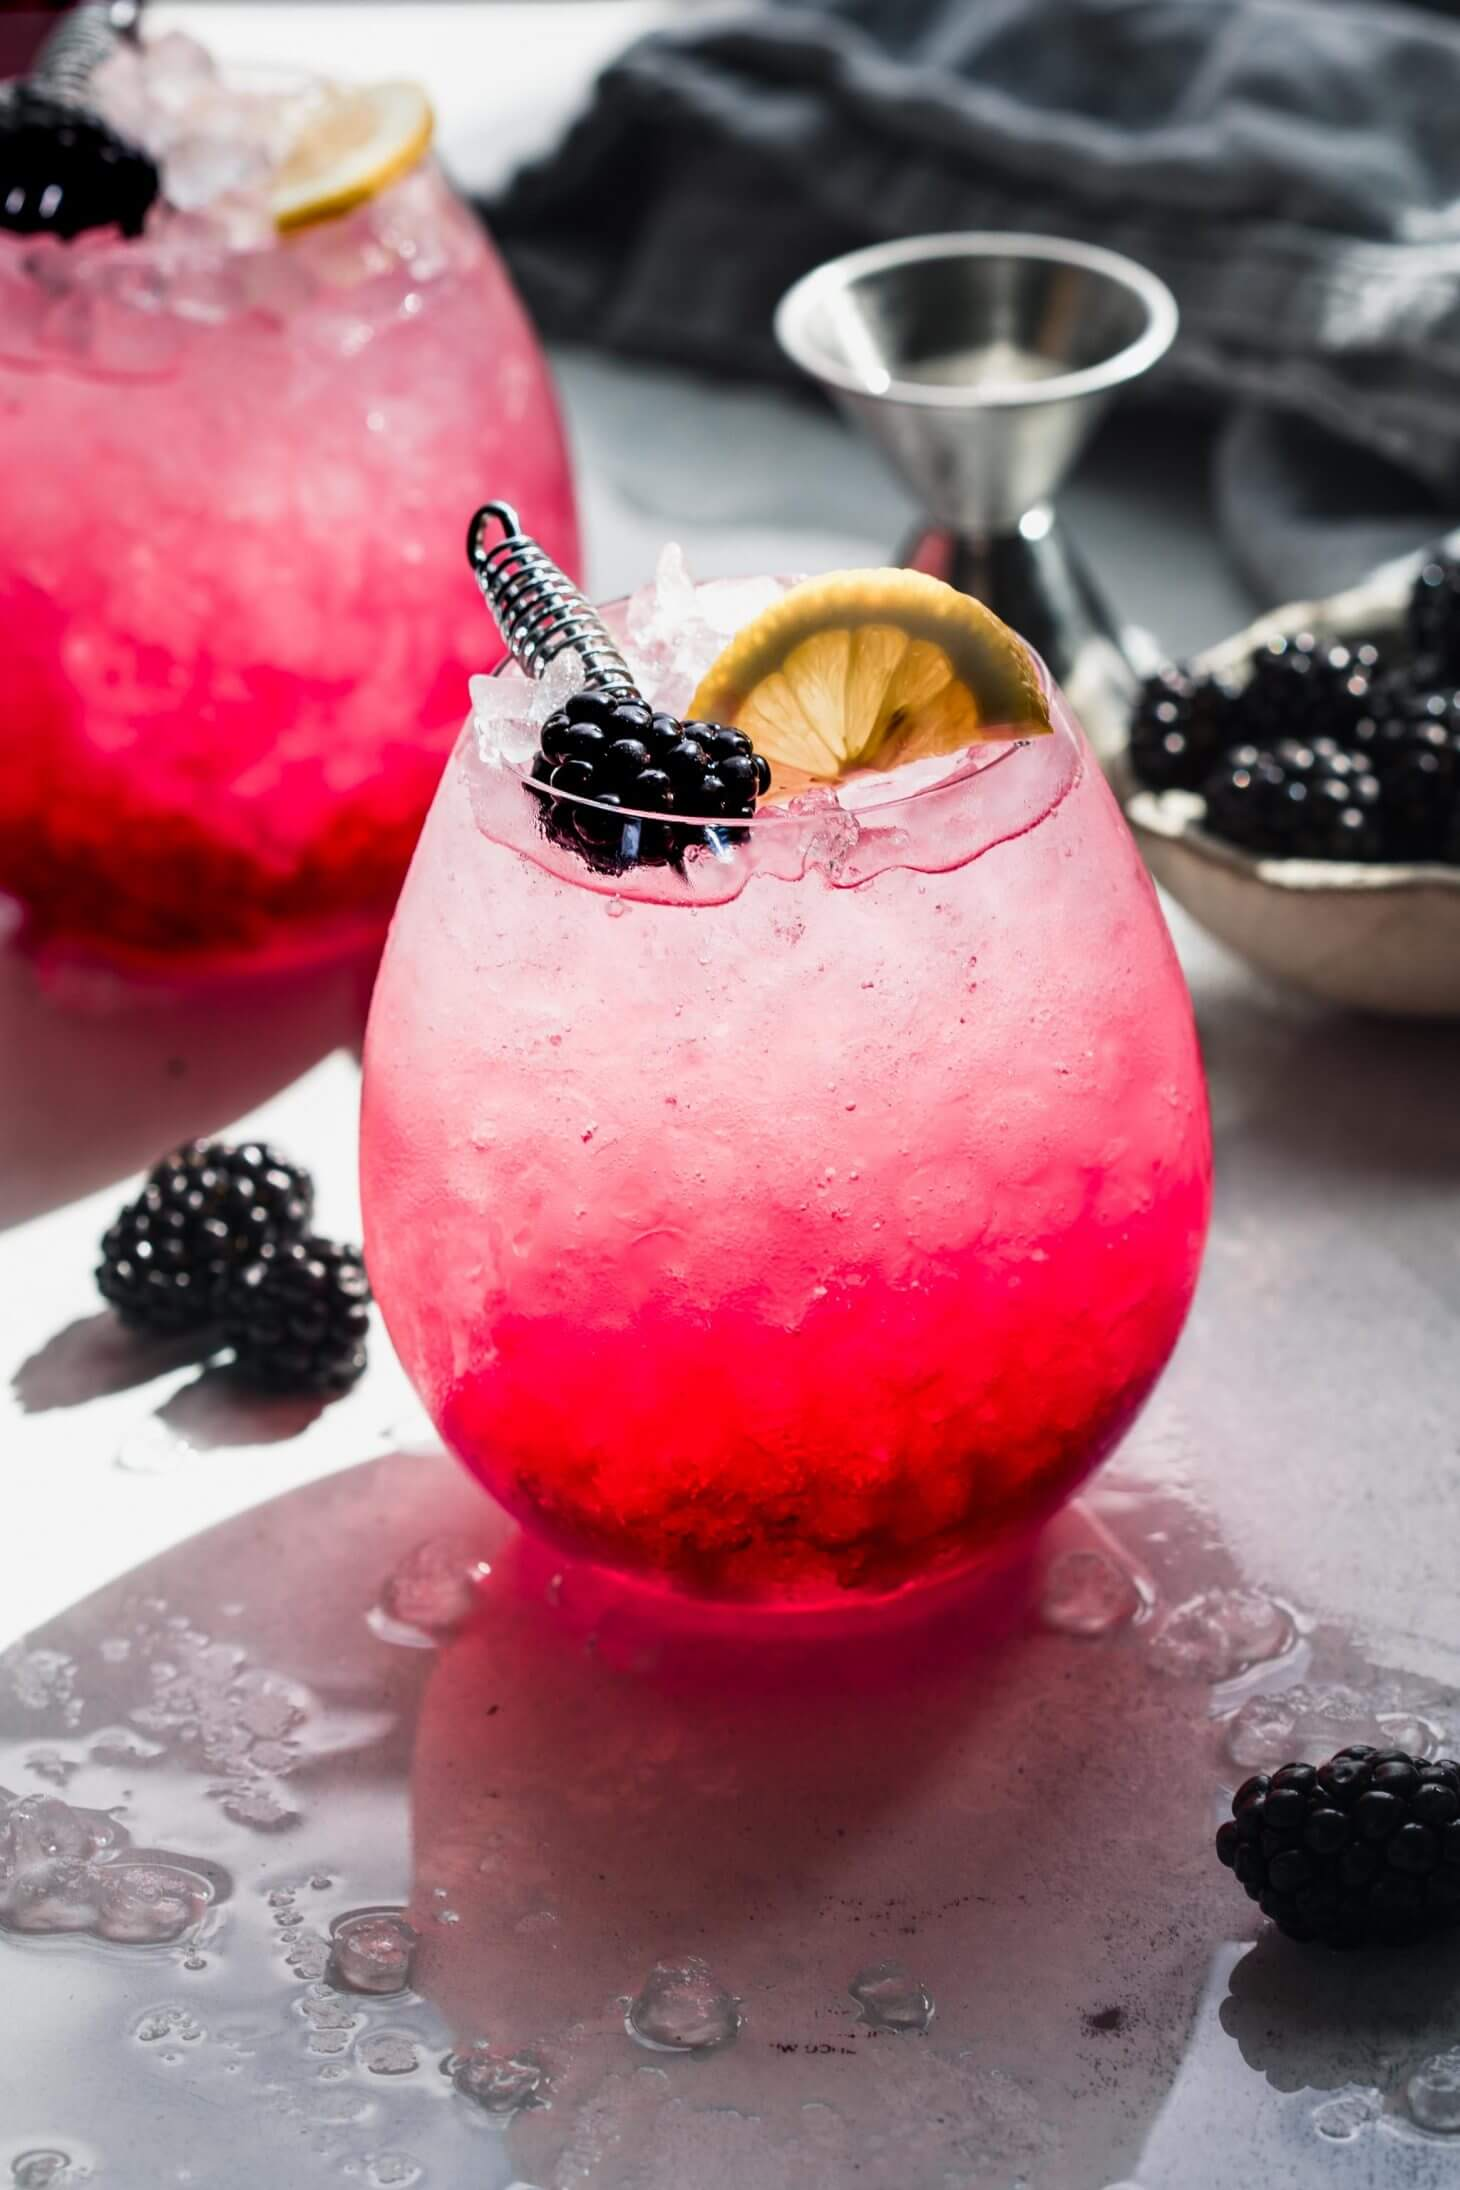 Side view of bramble cocktail garnished with lemon and blackberry.